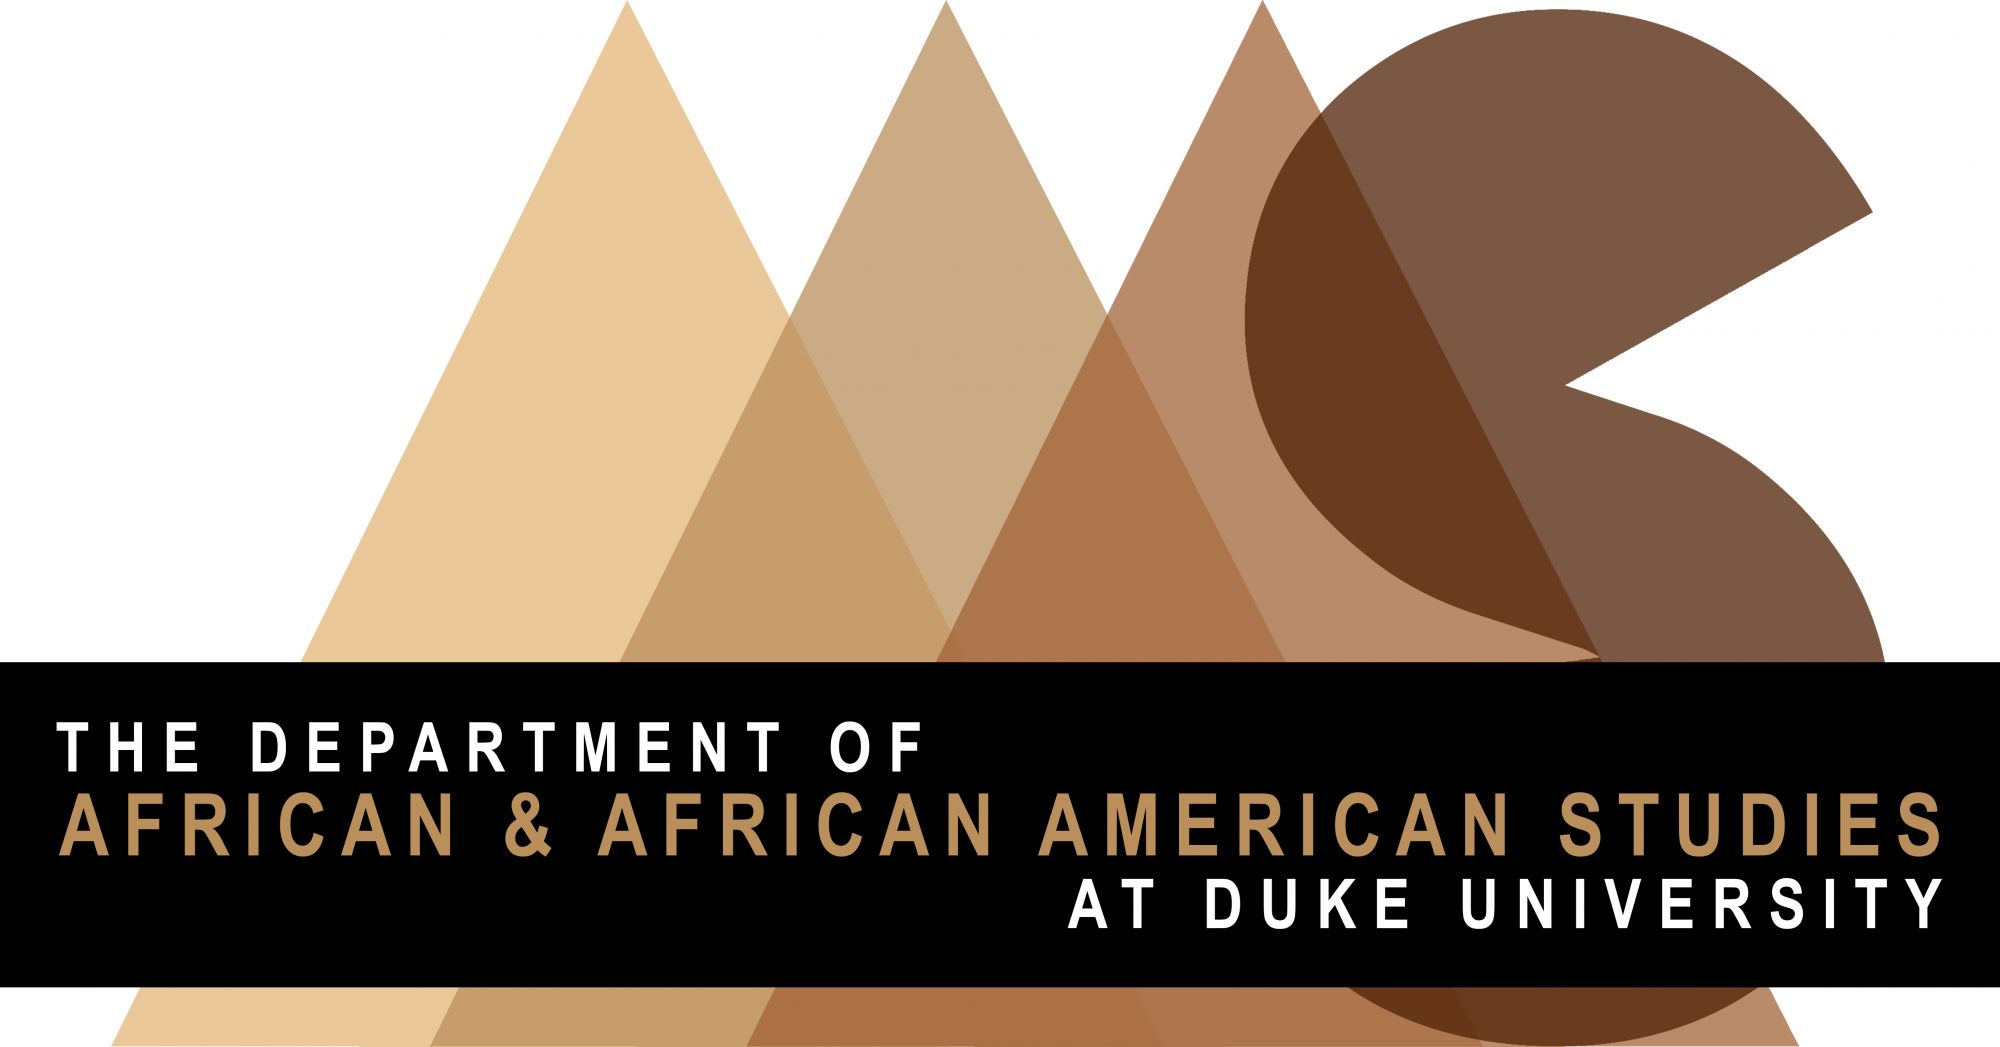 The Department of African & African American Studies at Duke University